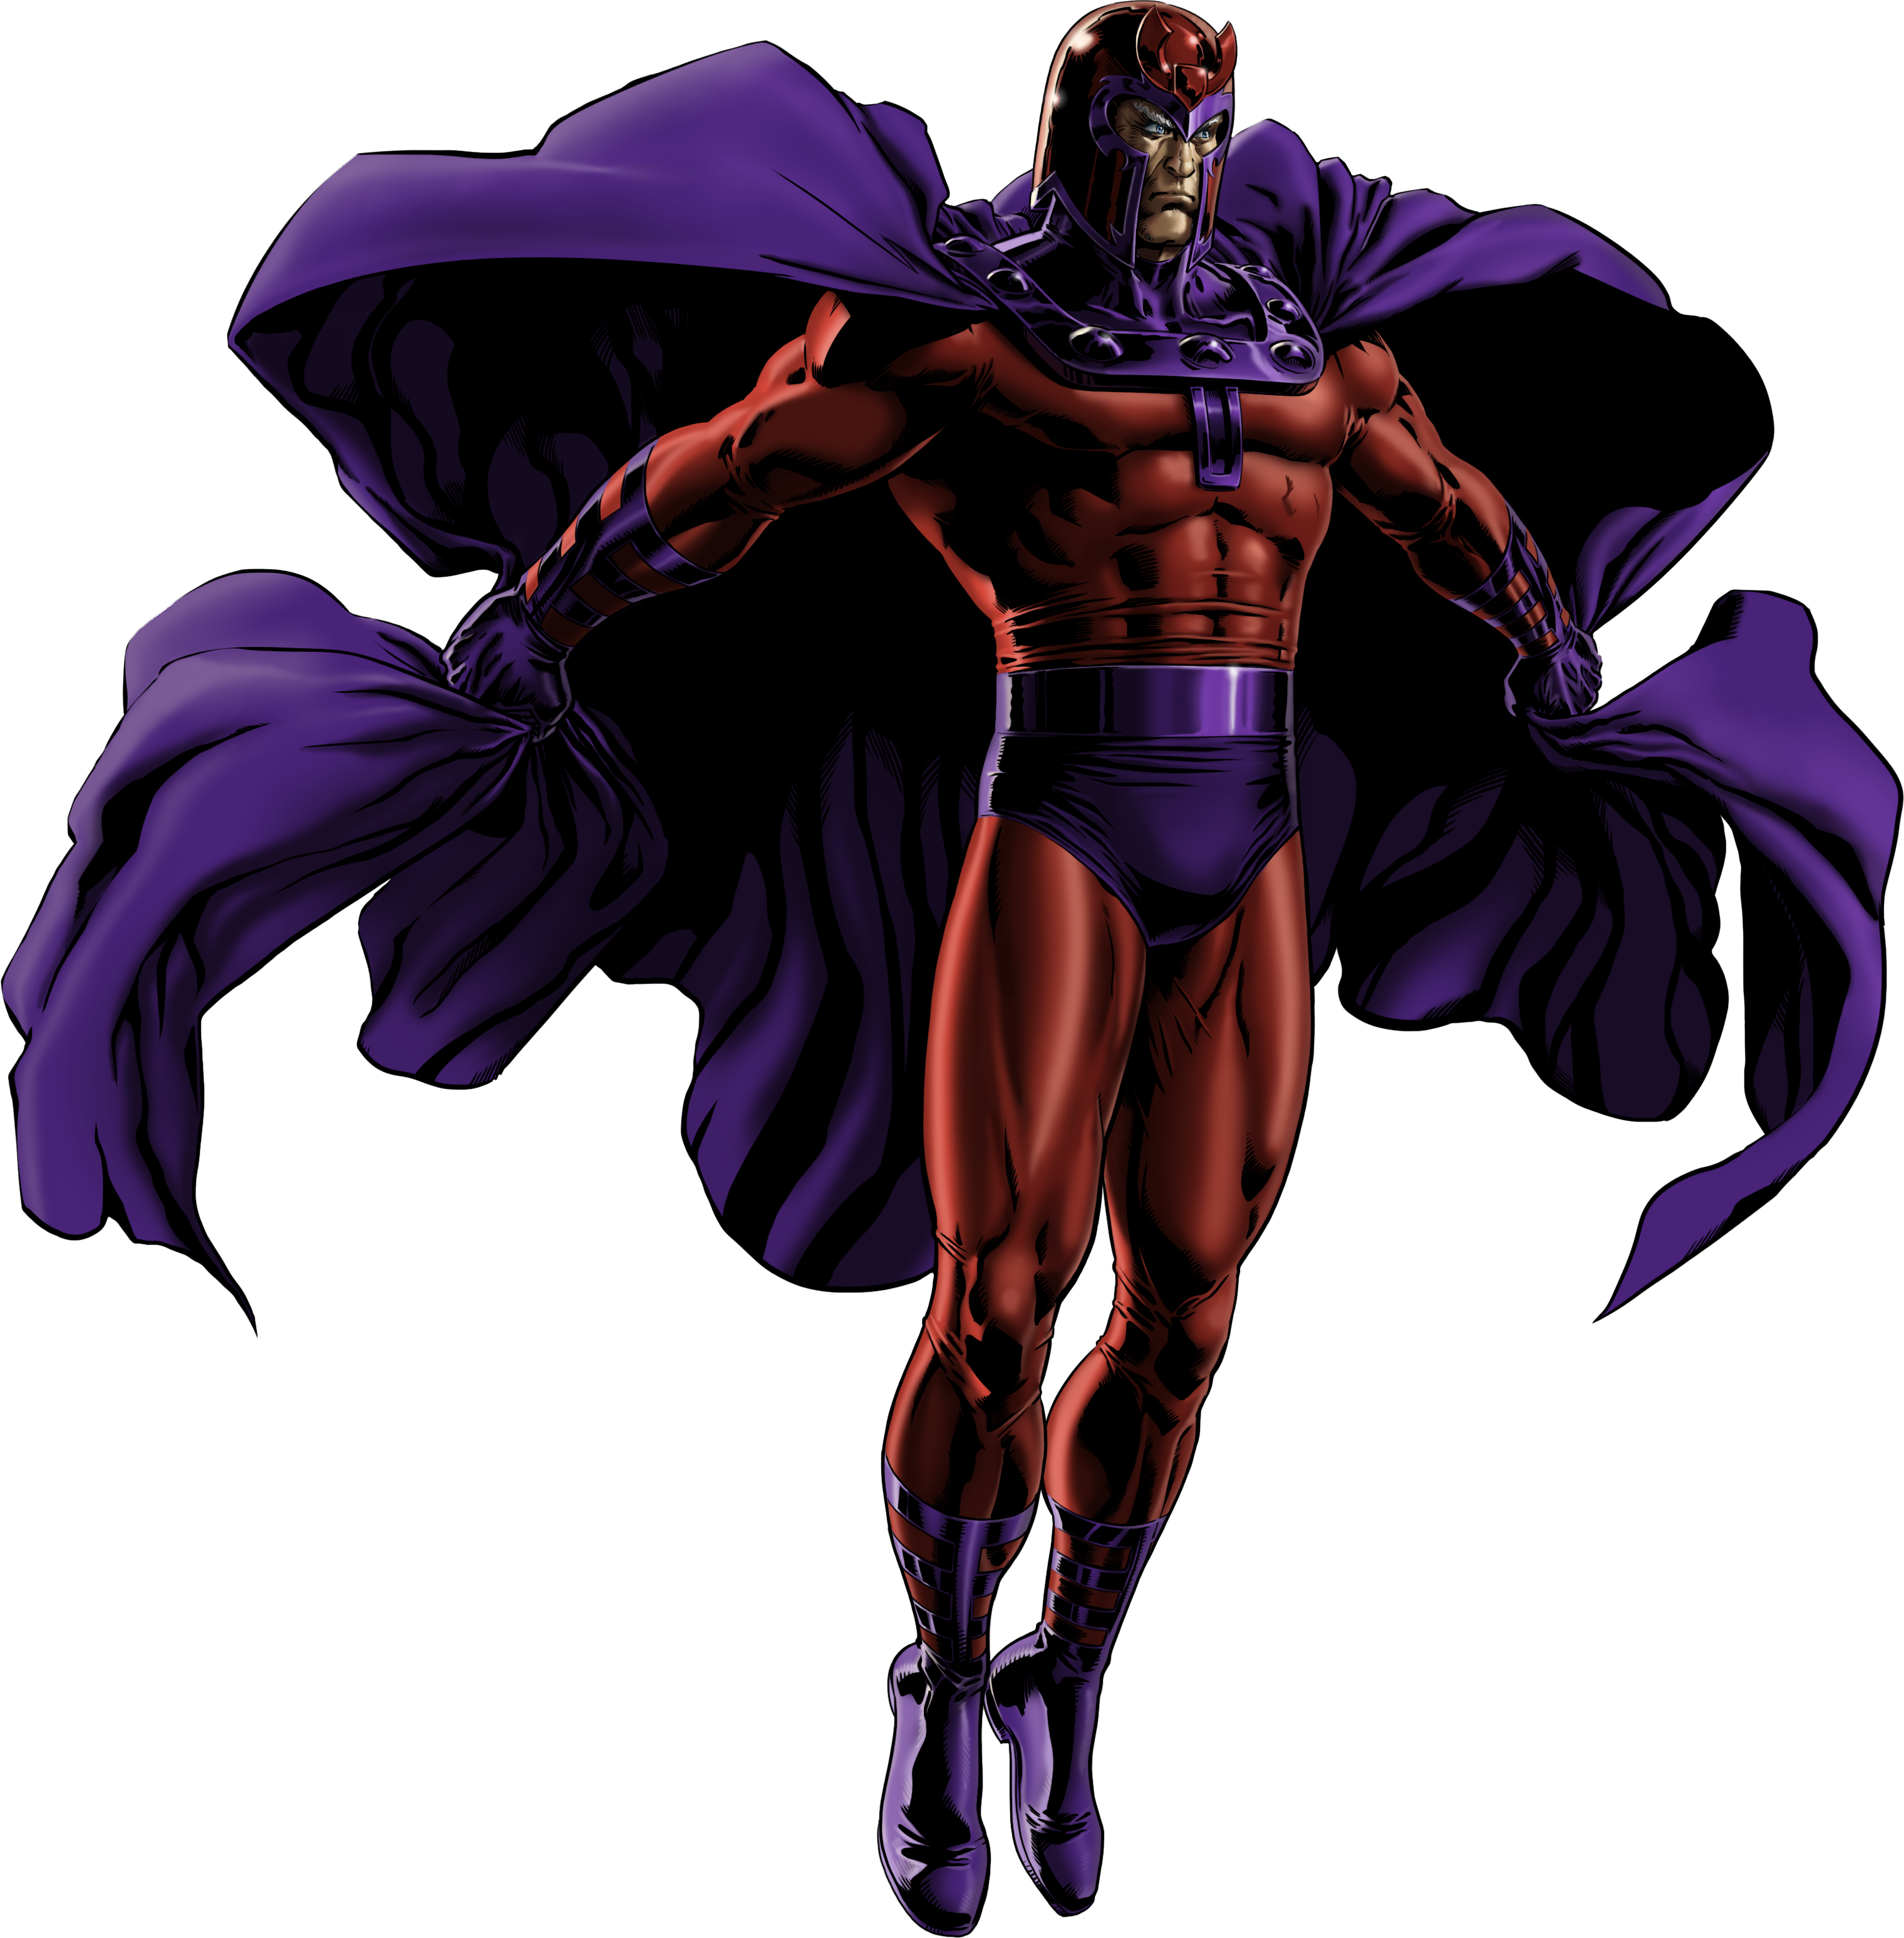 [Official Feedback] - Magneto - Page 21 - Marvel Heroes 2015 X 23 Marvel Avengers Alliance